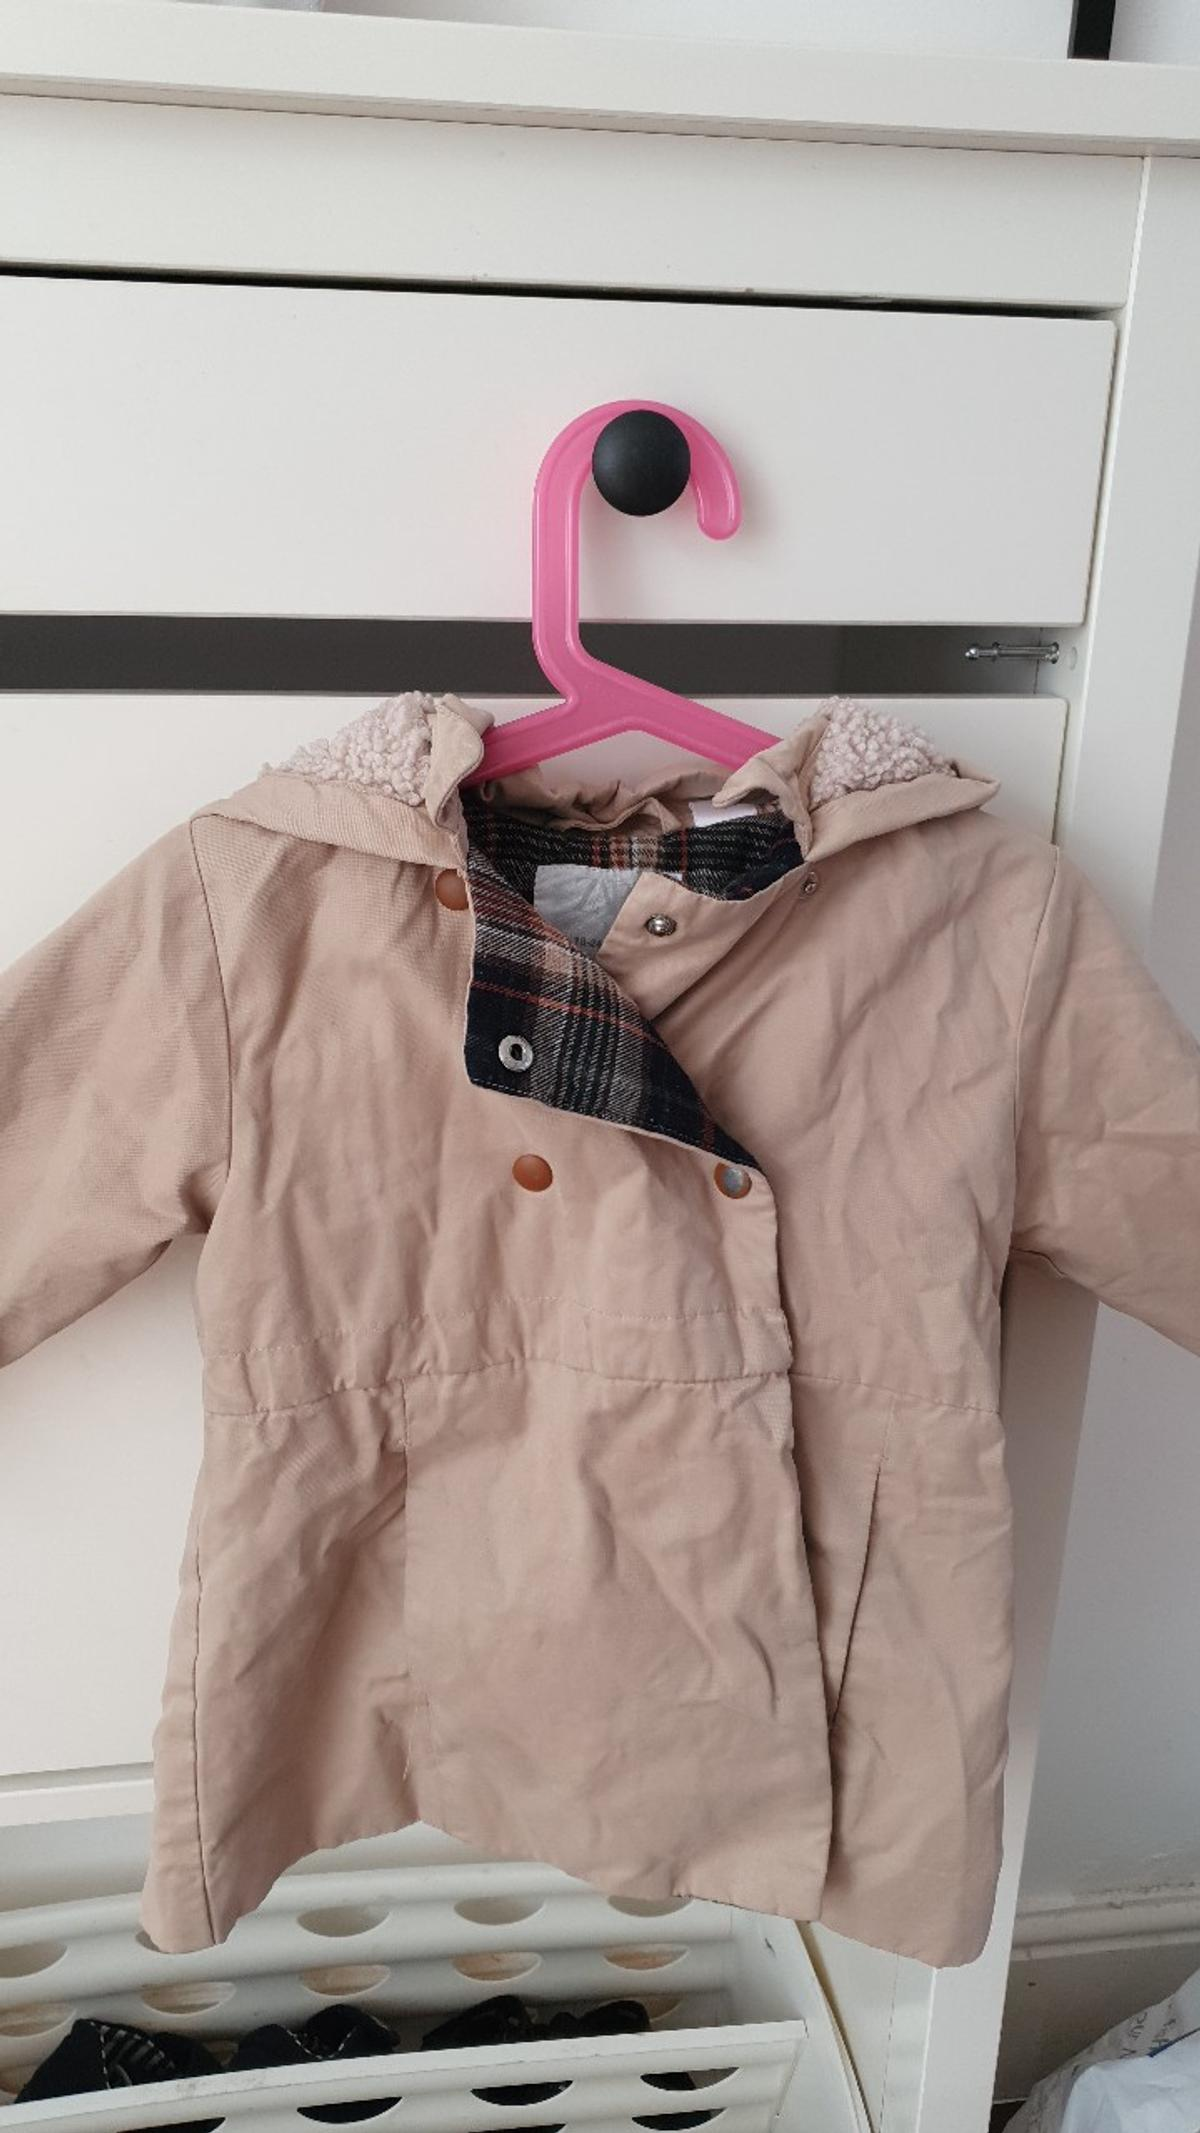 zara girls trench coat some slight wear to the buttons as the coat has been washed a few times however the actual coat is in great condition perfect weight for spring, smoke free home